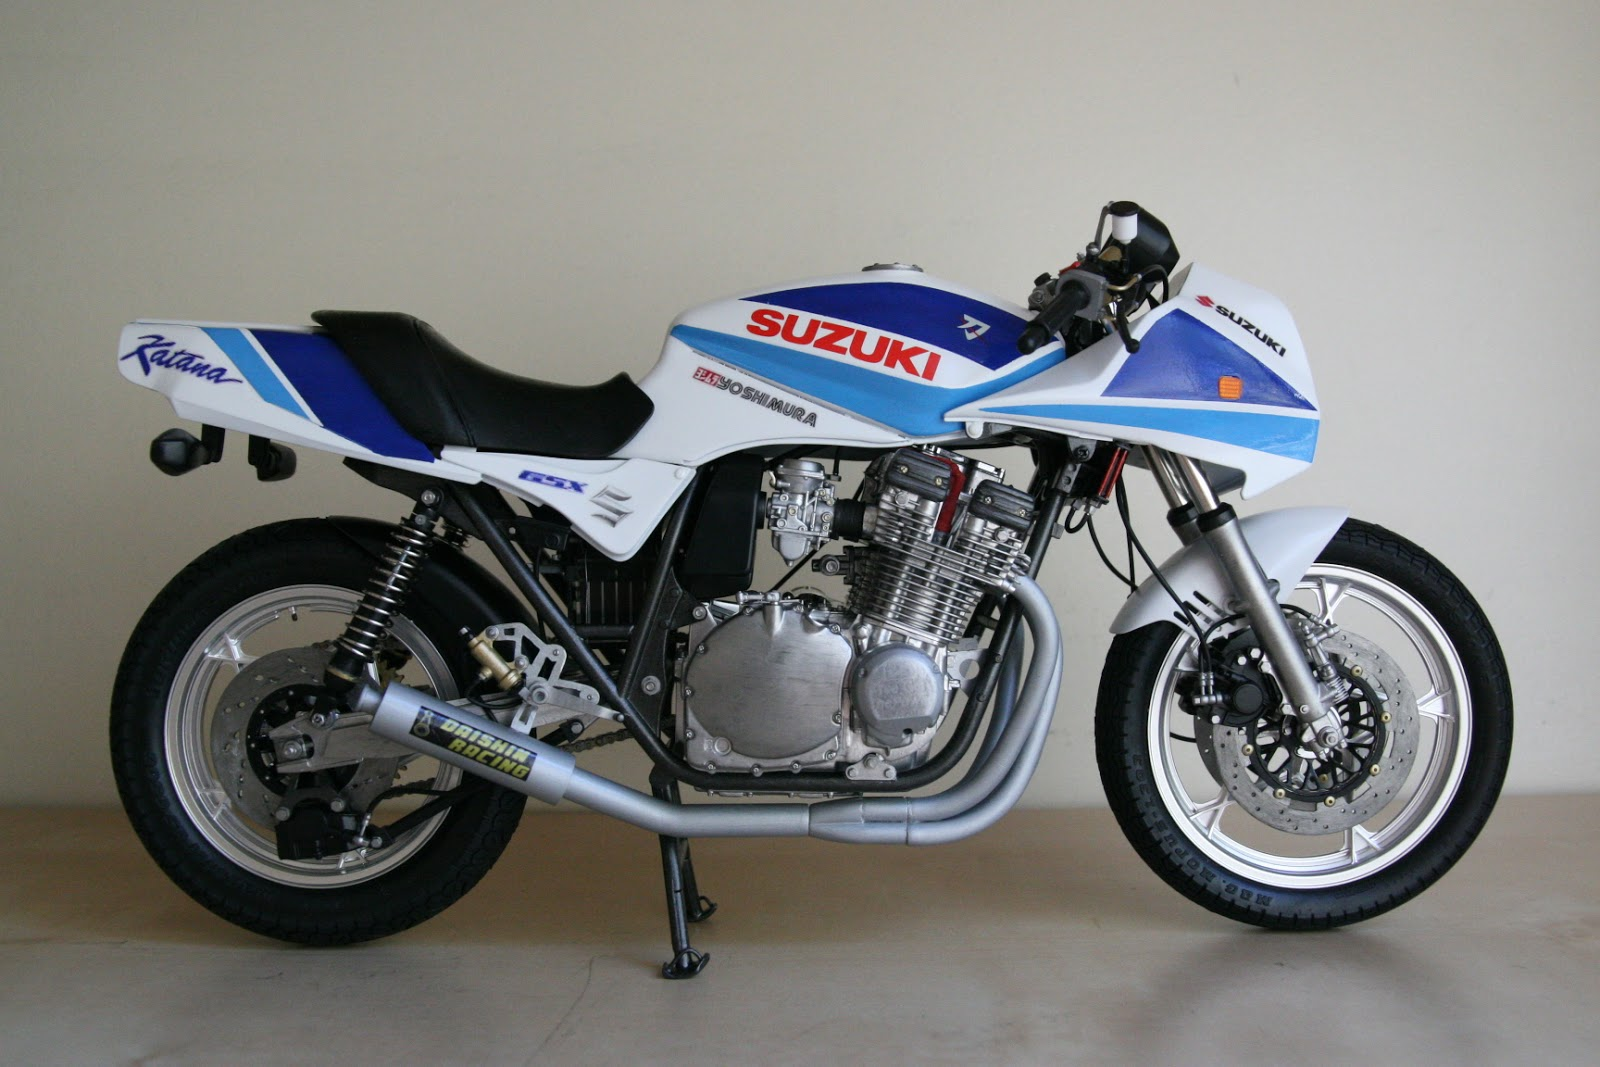 suzuki katana - pictures, posters, news and videos on your pursuit